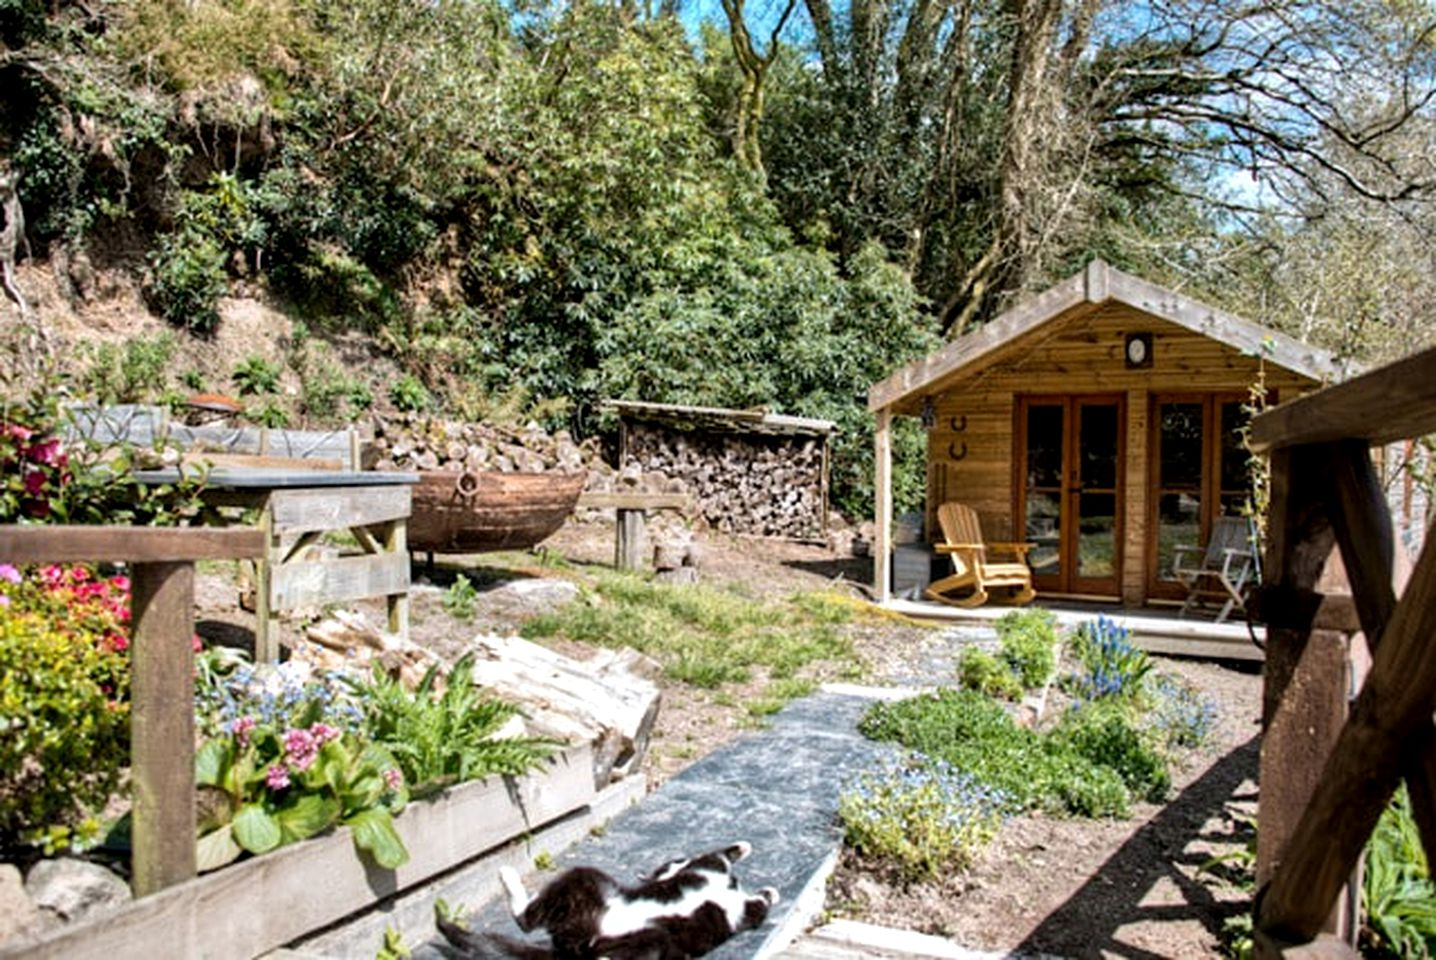 Cabins (St. Blazey, England, United Kingdom)